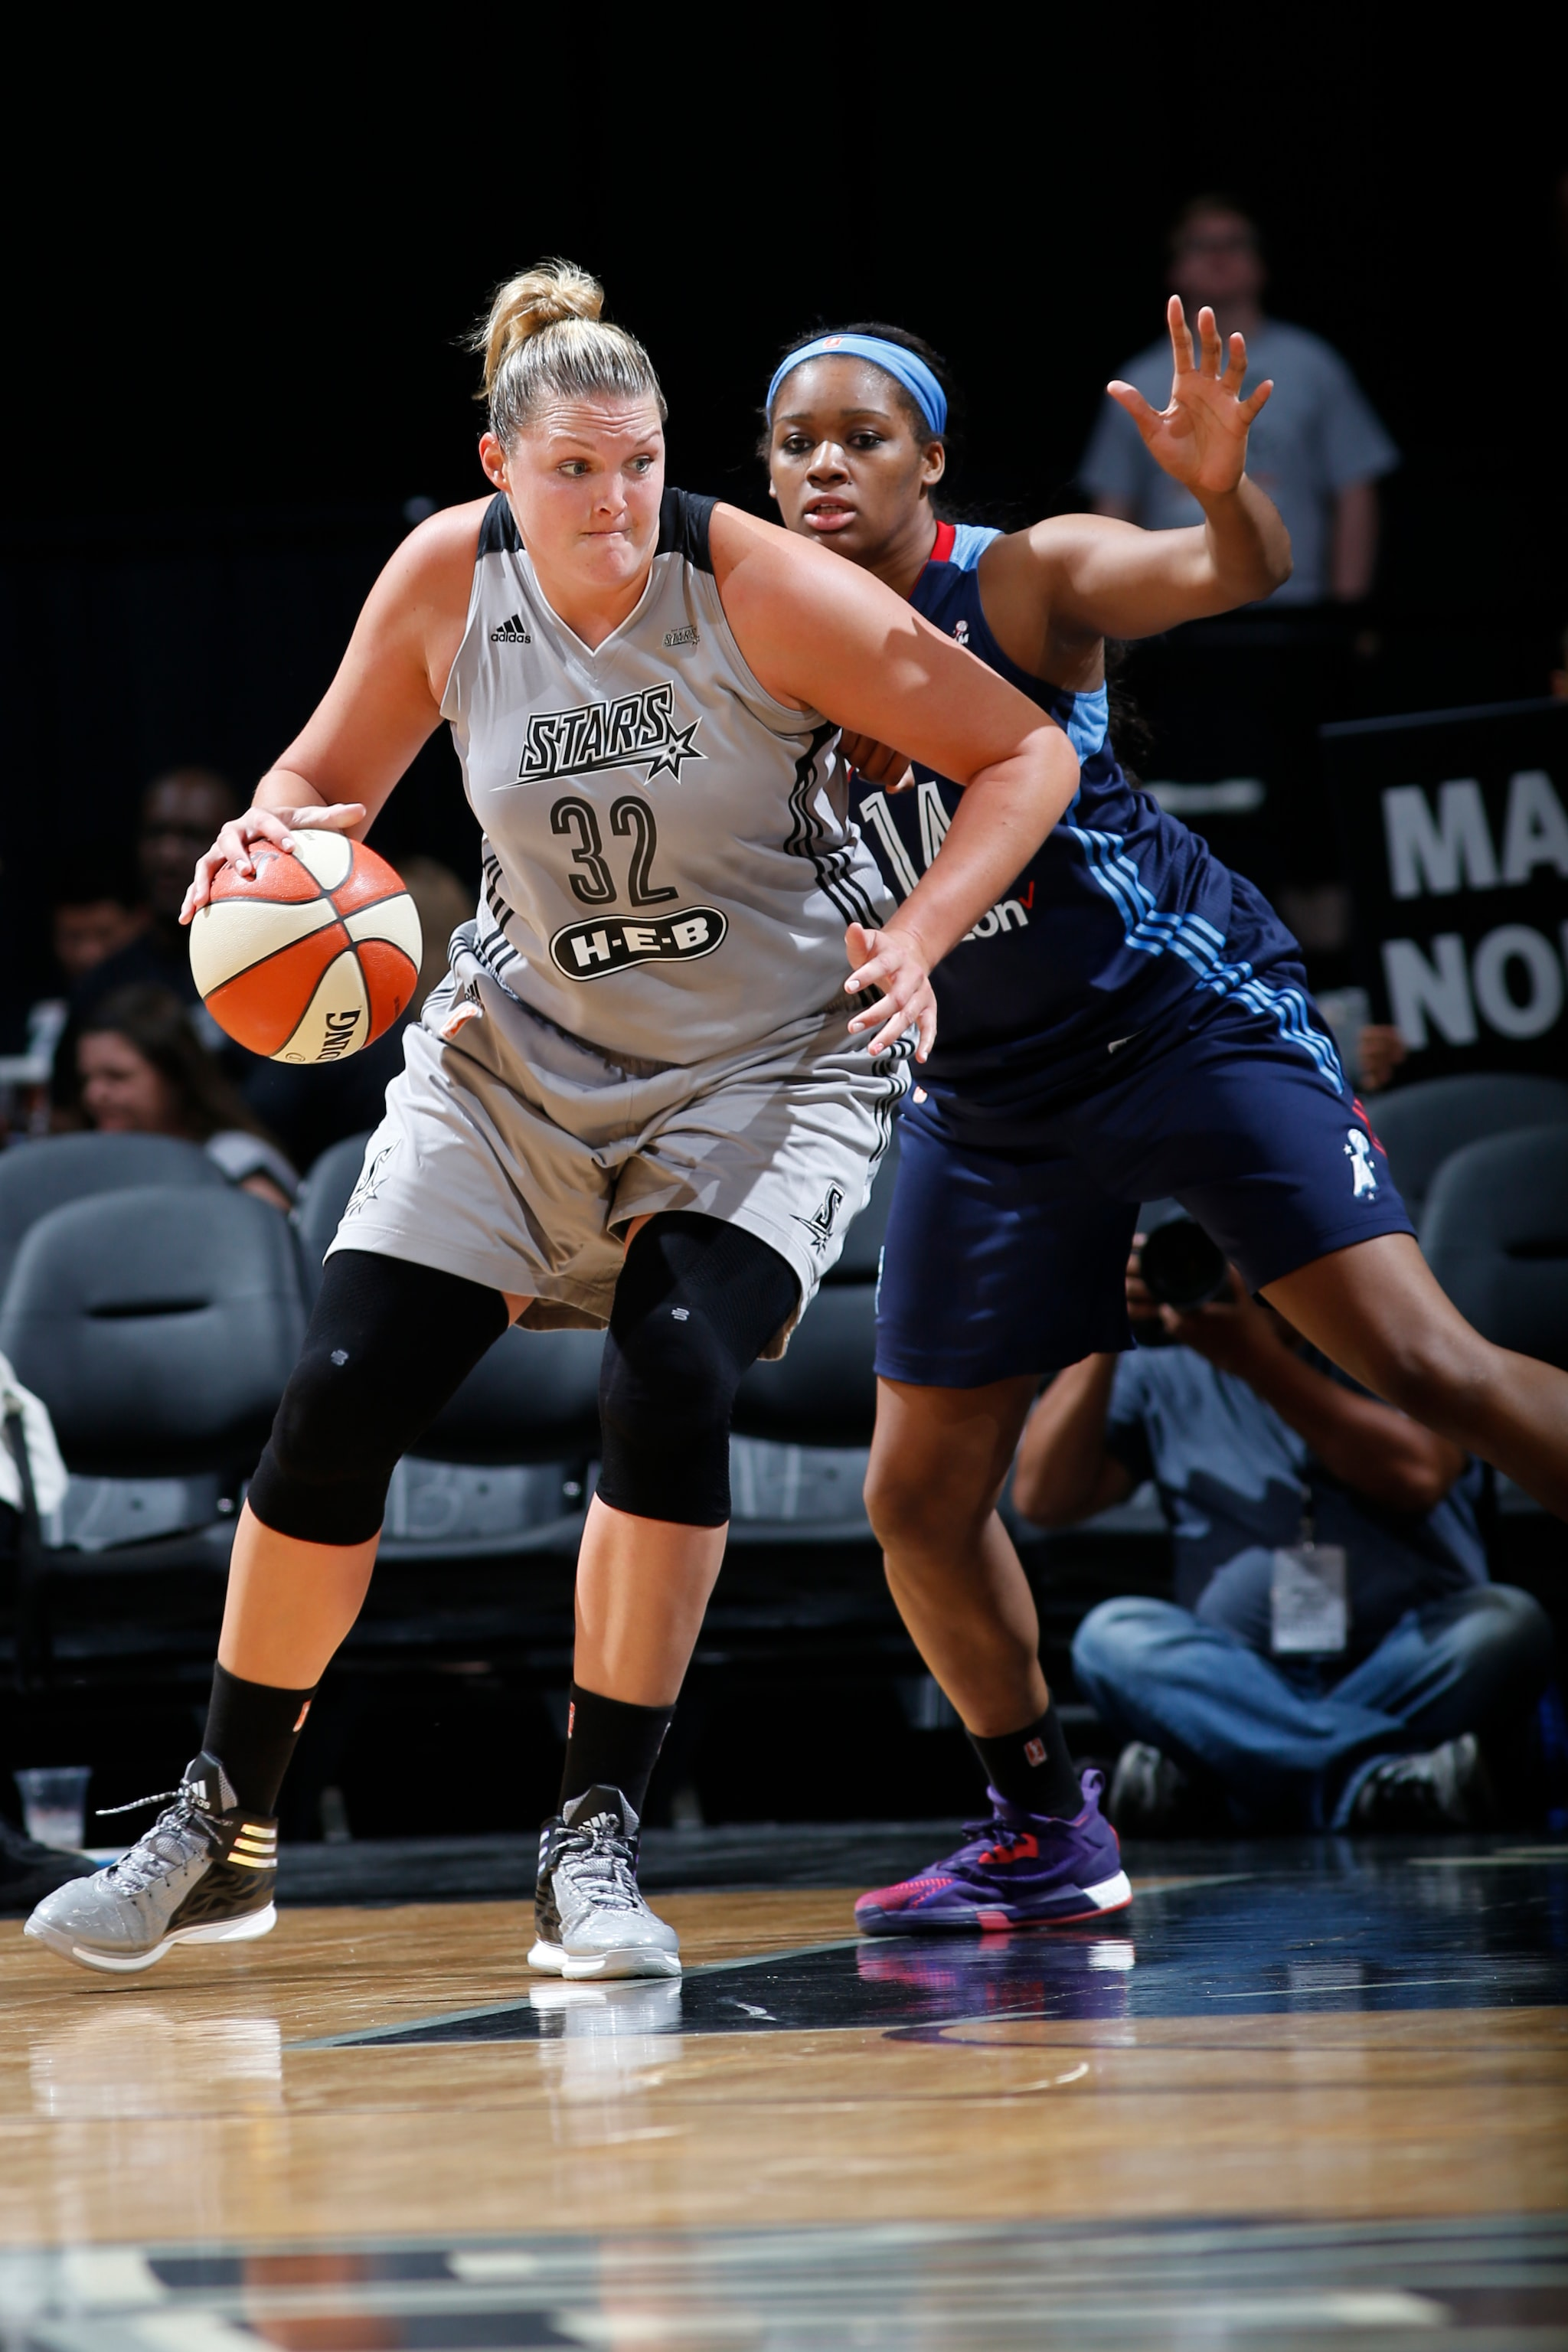 SAN ANTONIO, TX - MAY 14: Jayne Appel-Marinelli #32 of the San Antonio Stars drives to the basket against the Atlanta Dream during the game on May 14, 2016 at AT&T Center in San Antonio, Texas. NOTE TO USER: User expressly acknowledges and agrees that, by downloading and or using this Photograph, user is consenting to the terms and conditions of the Getty Images License Agreement. Mandatory Copyright Notice: Copyright 2016 NBAE (Photo by Chris Covatta/NBAE via Getty Images)